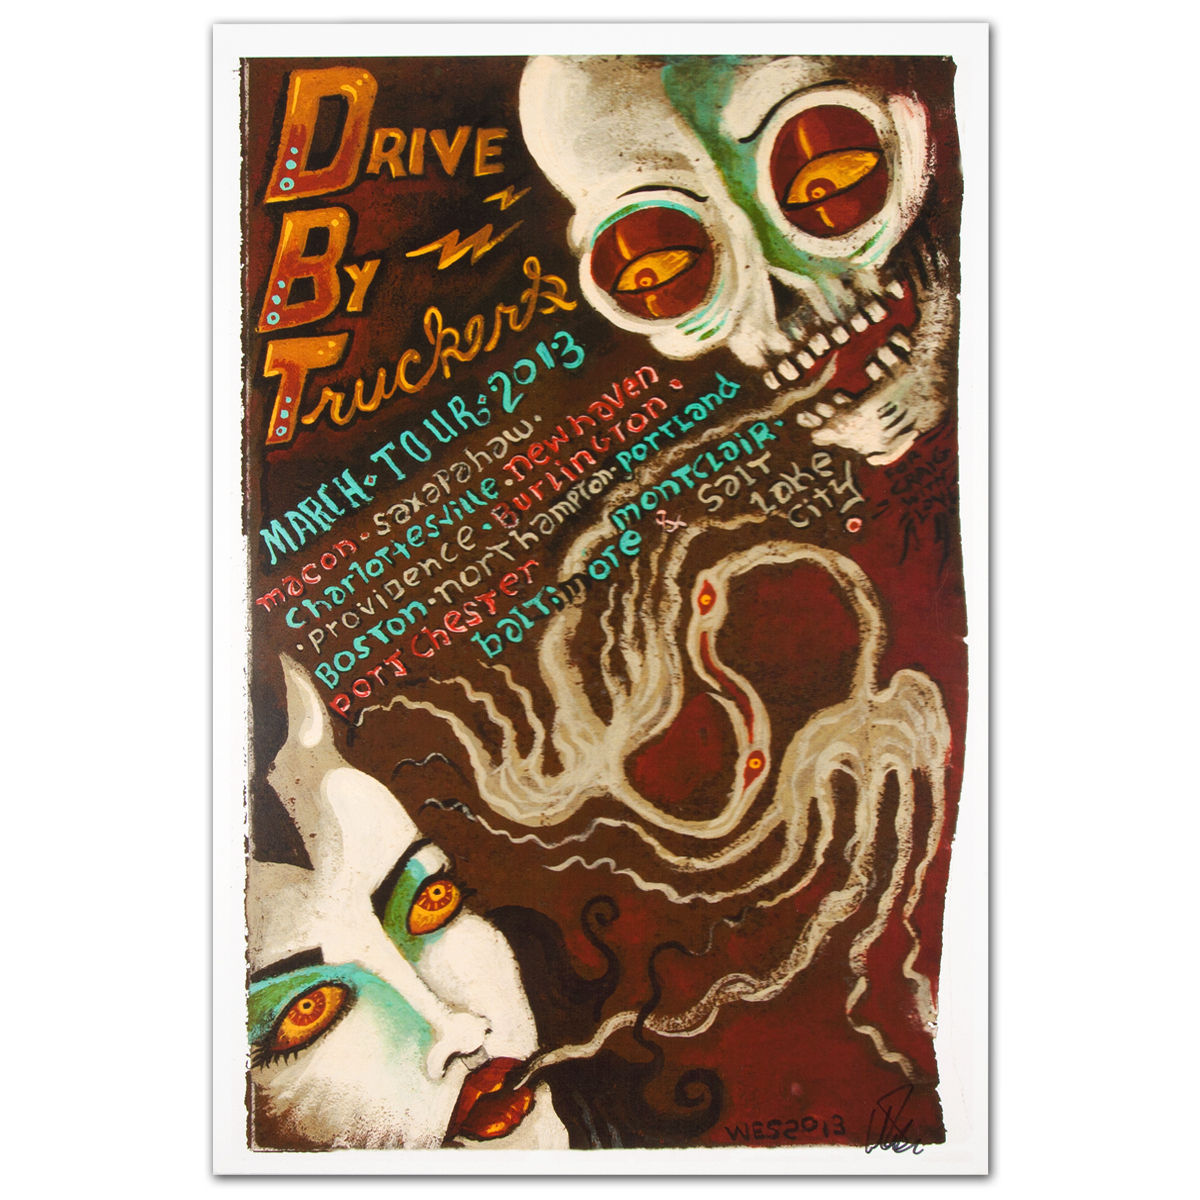 Drive-By Truckers March Tour 2013 Poster